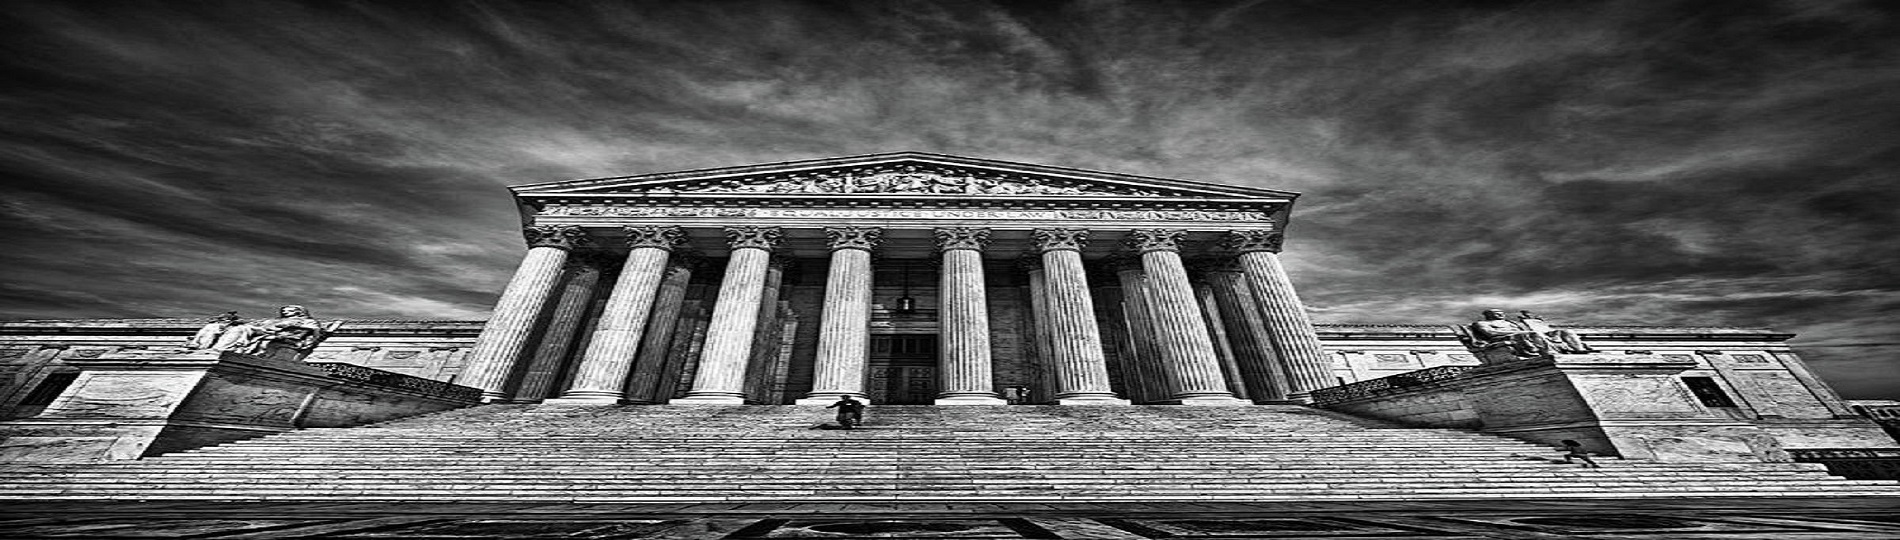 supreme-court-building-in-black-and-white-val-black-russian-tourchin